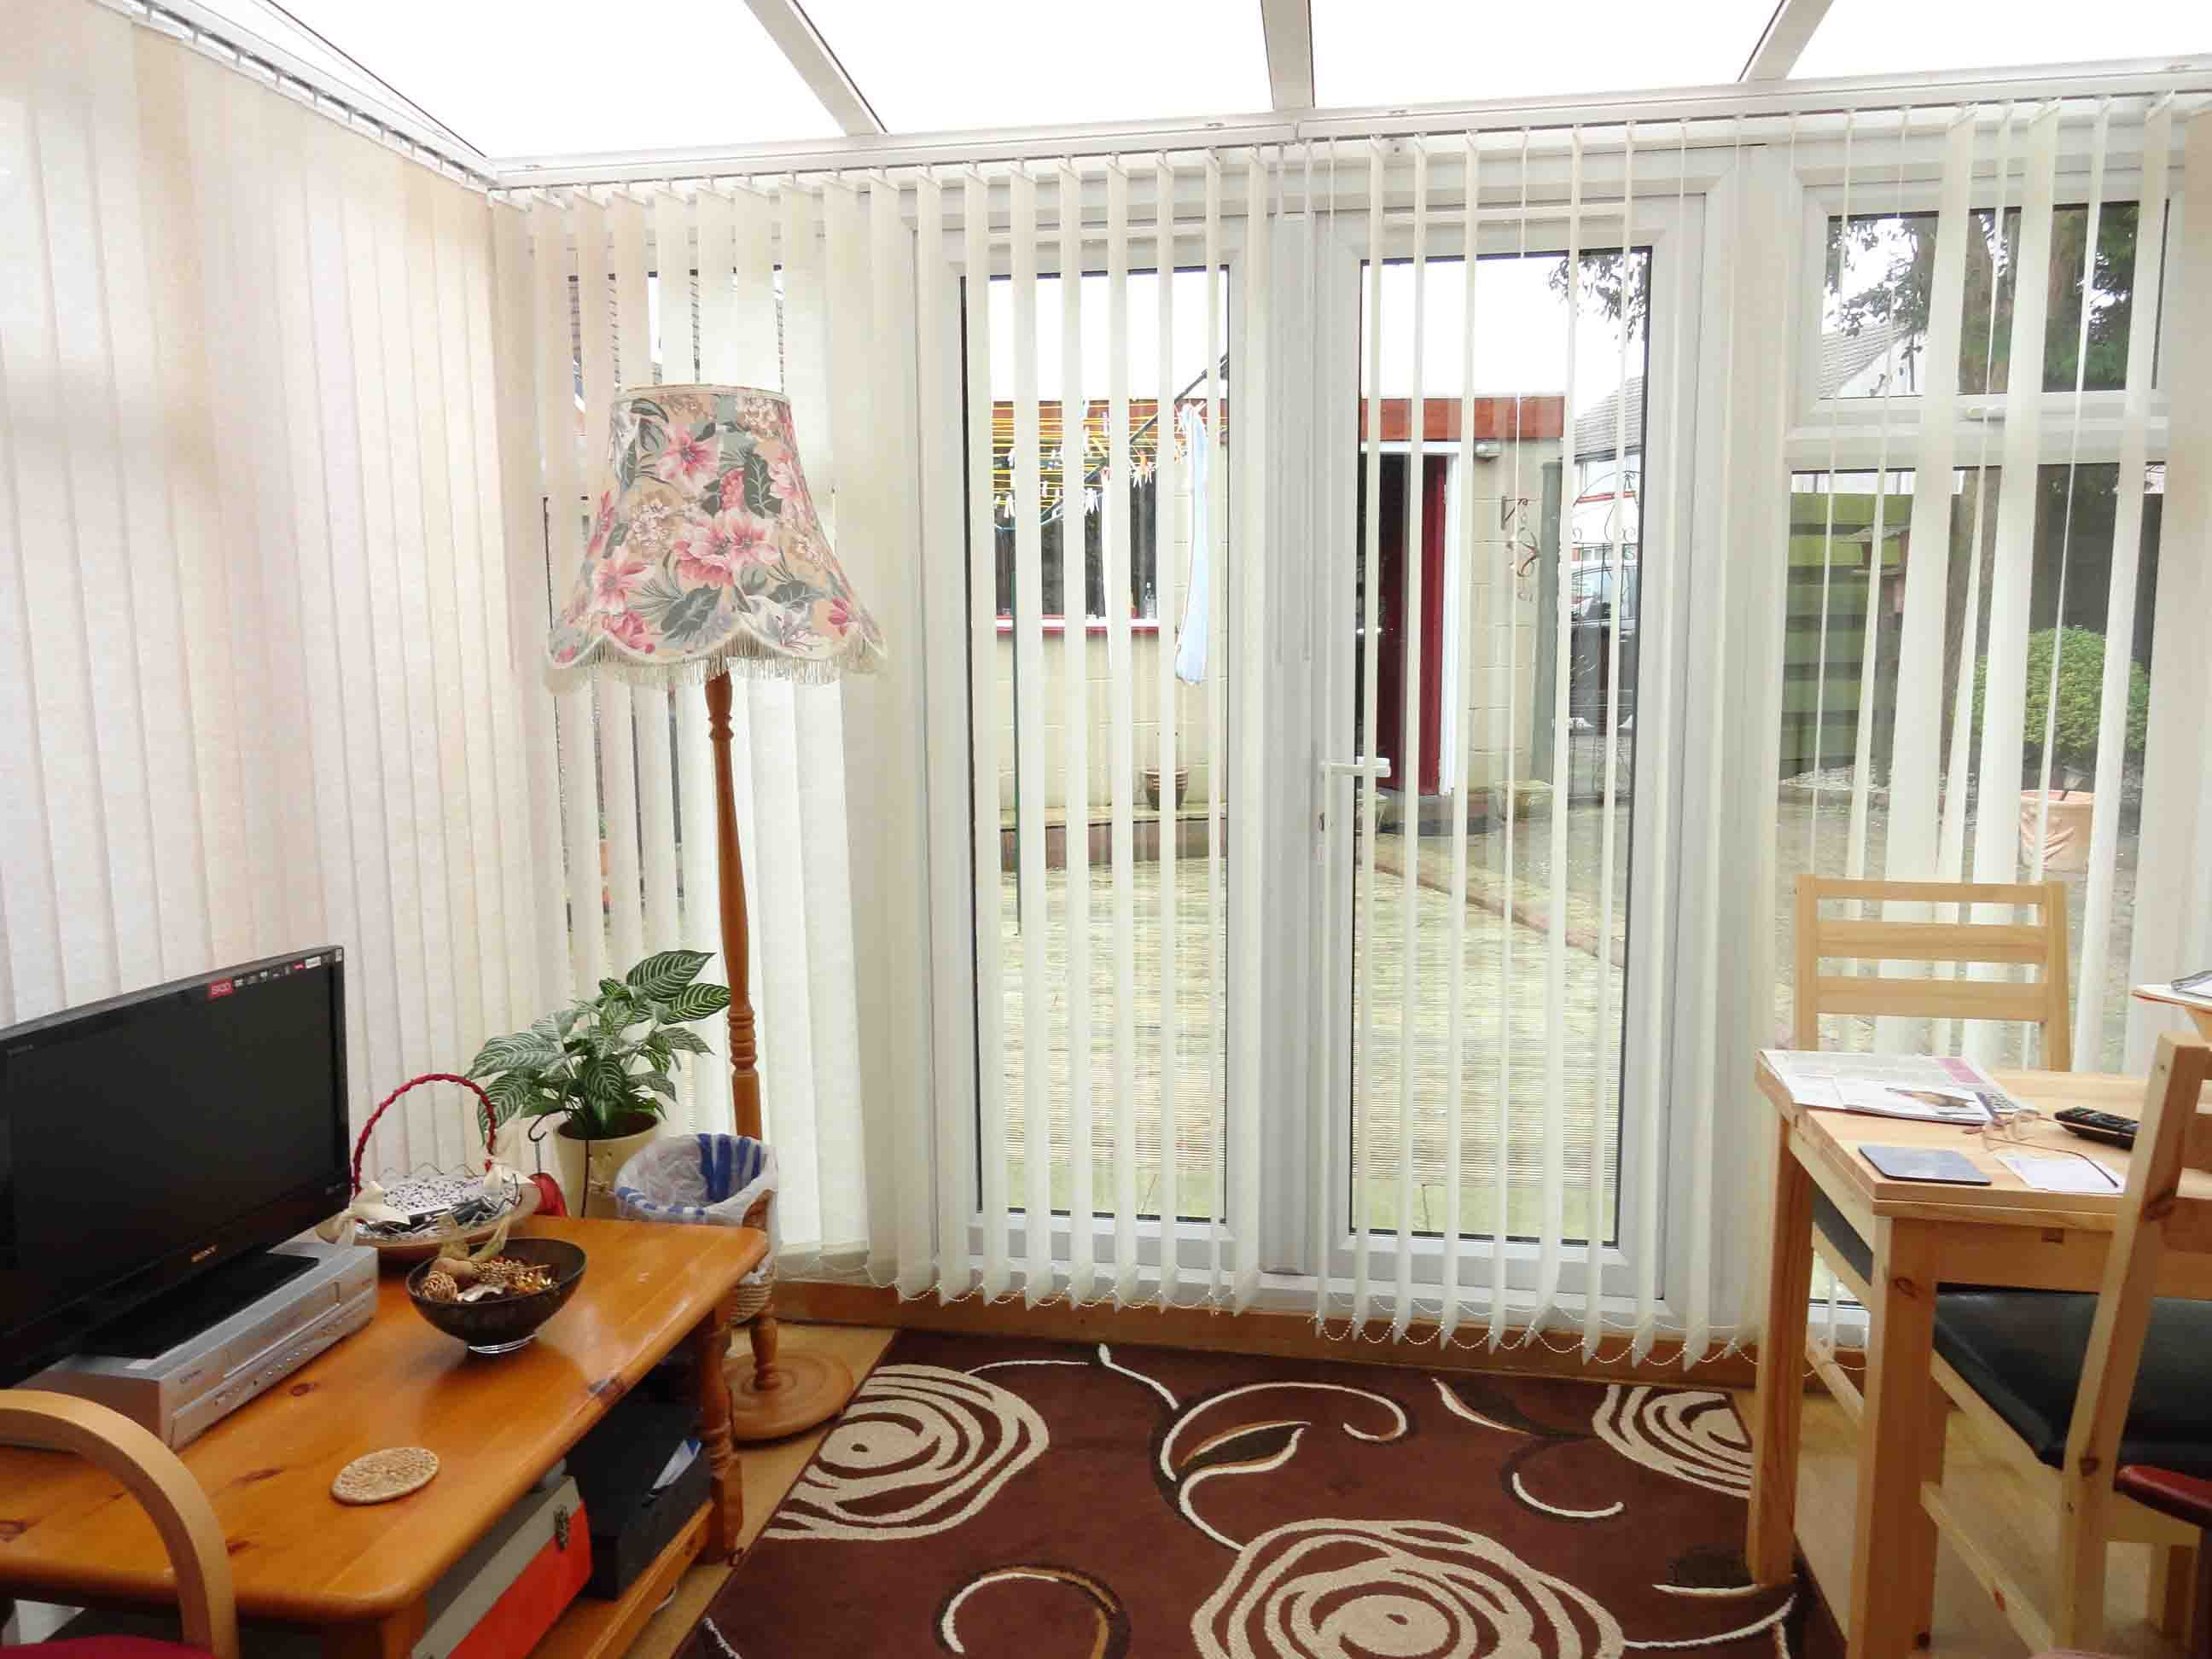 Interior White Tone Vertical Door Curtains Blinds Mixed Floral